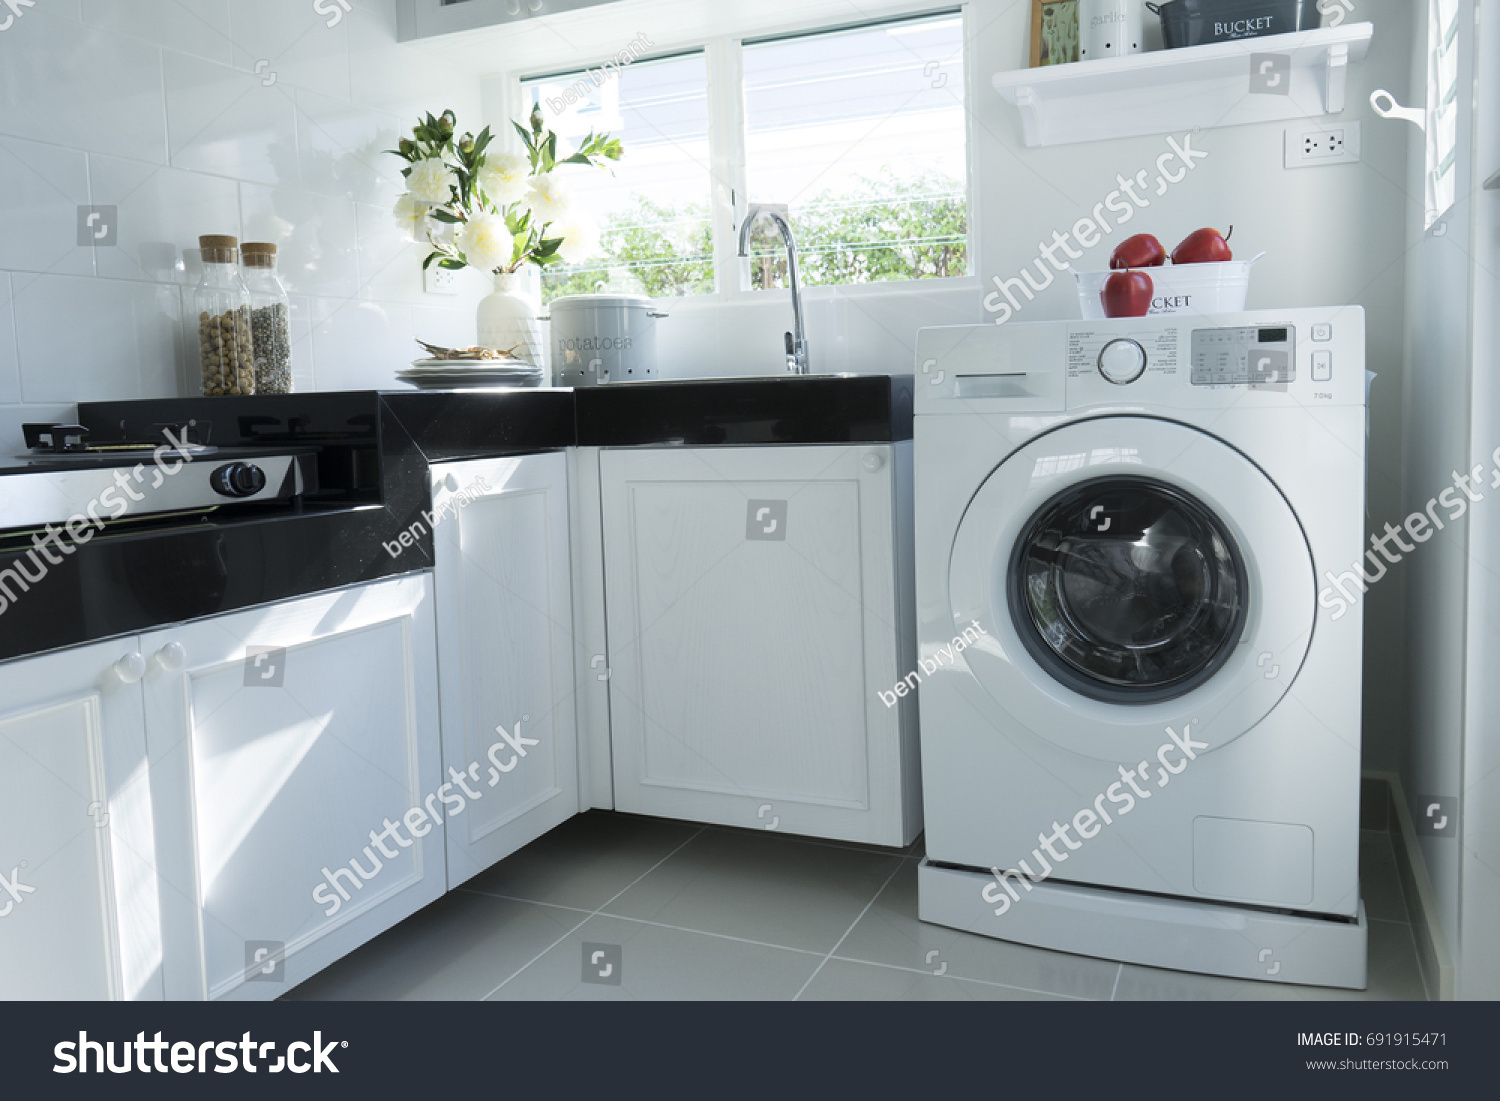 Home Kitchen Washing Machine Stock Photo (Edit Now) 691915471 ...